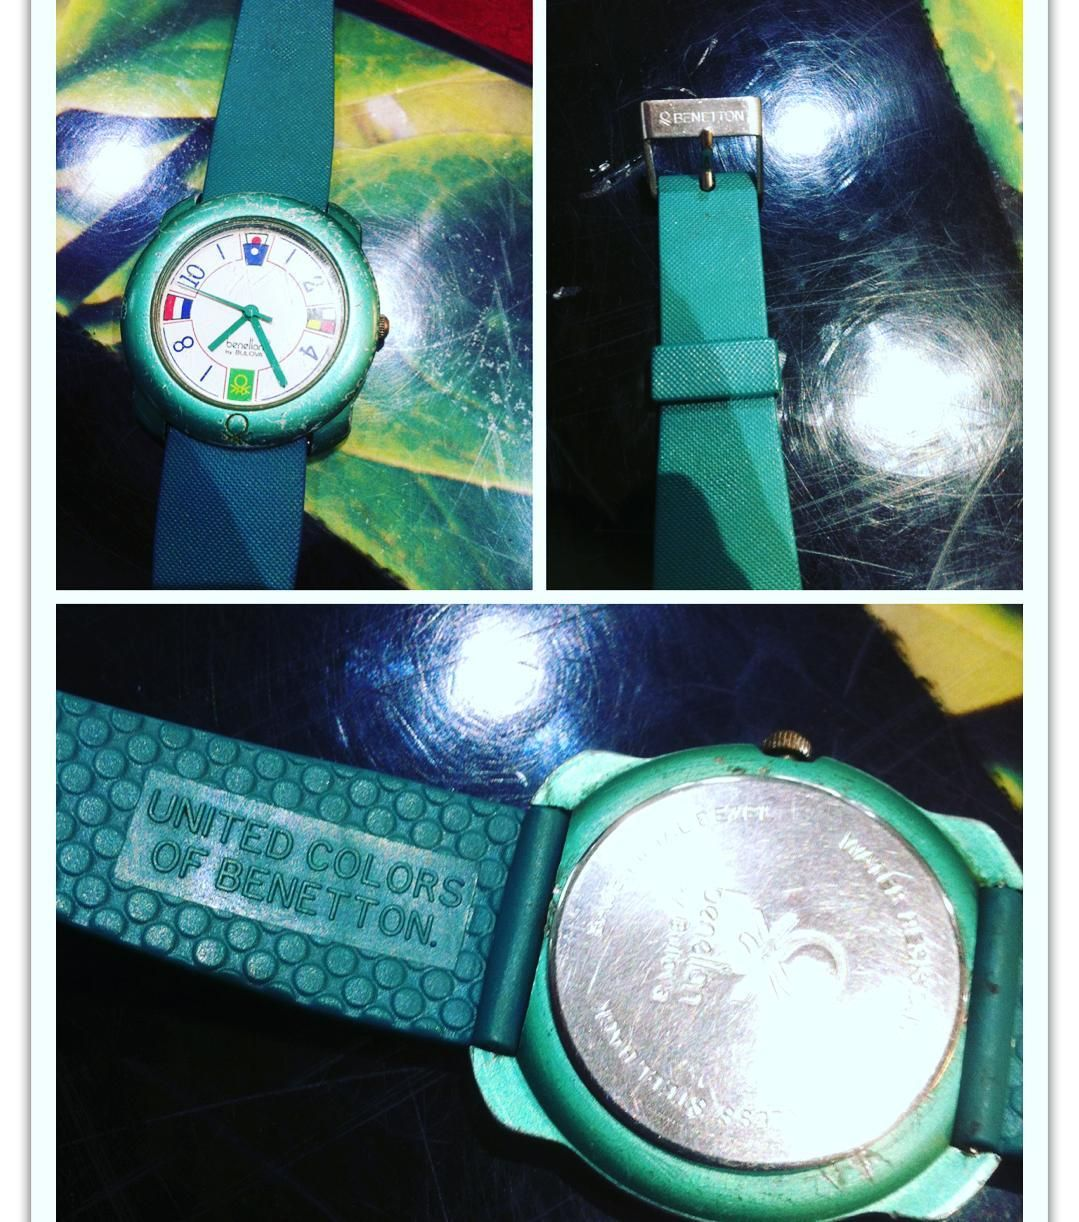 Vintage Watch United Colors Of Benetton By Bulovastrap Benetton